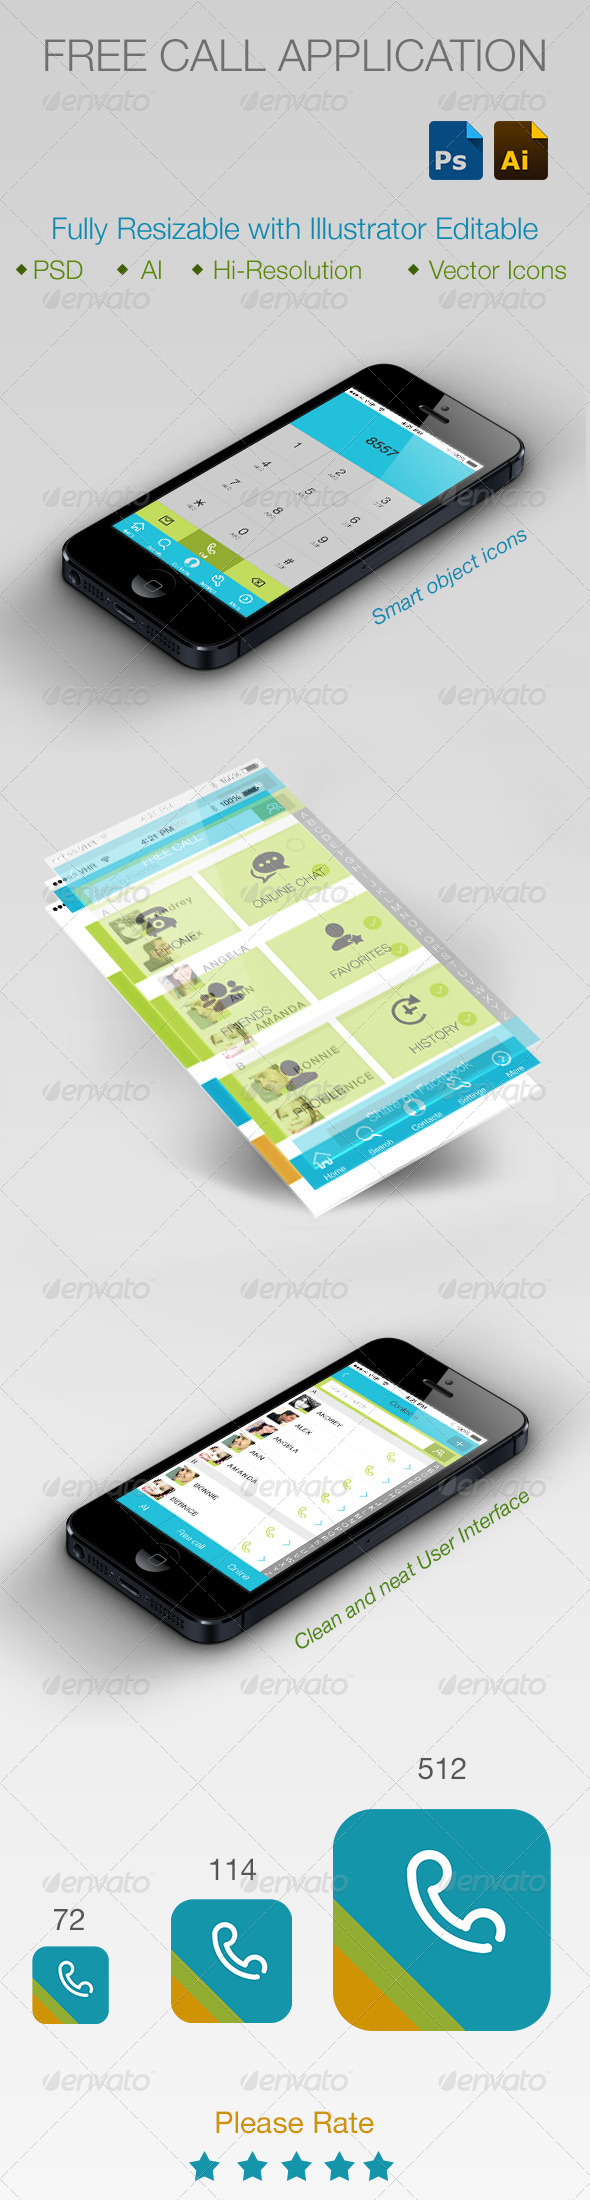 GraphicRiver Free Call Application Smartphone 5645799